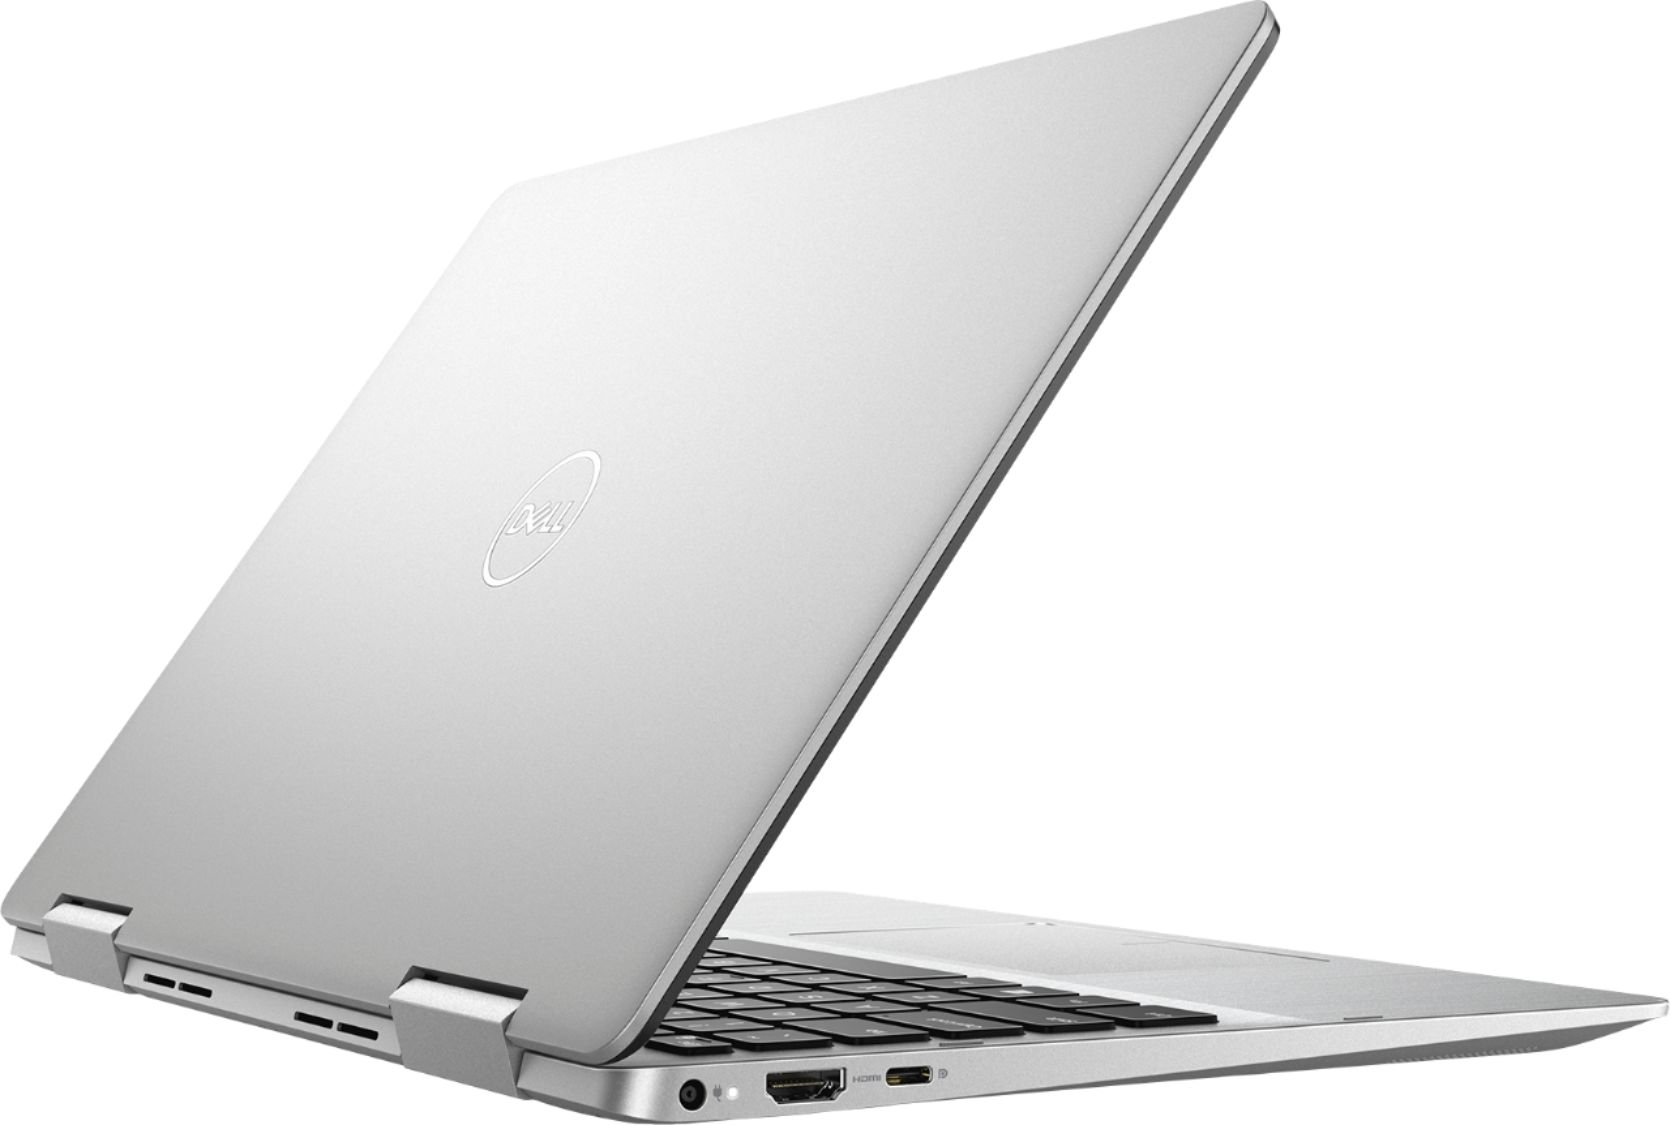 "Alt View Zoom 11. Dell - Inspiron 2-in-1 13.3"" Geek Squad Certified Refurbished Touch-Screen Laptop - Intel Core i5 - 8GB Memory - 256GB SSD - Silver."